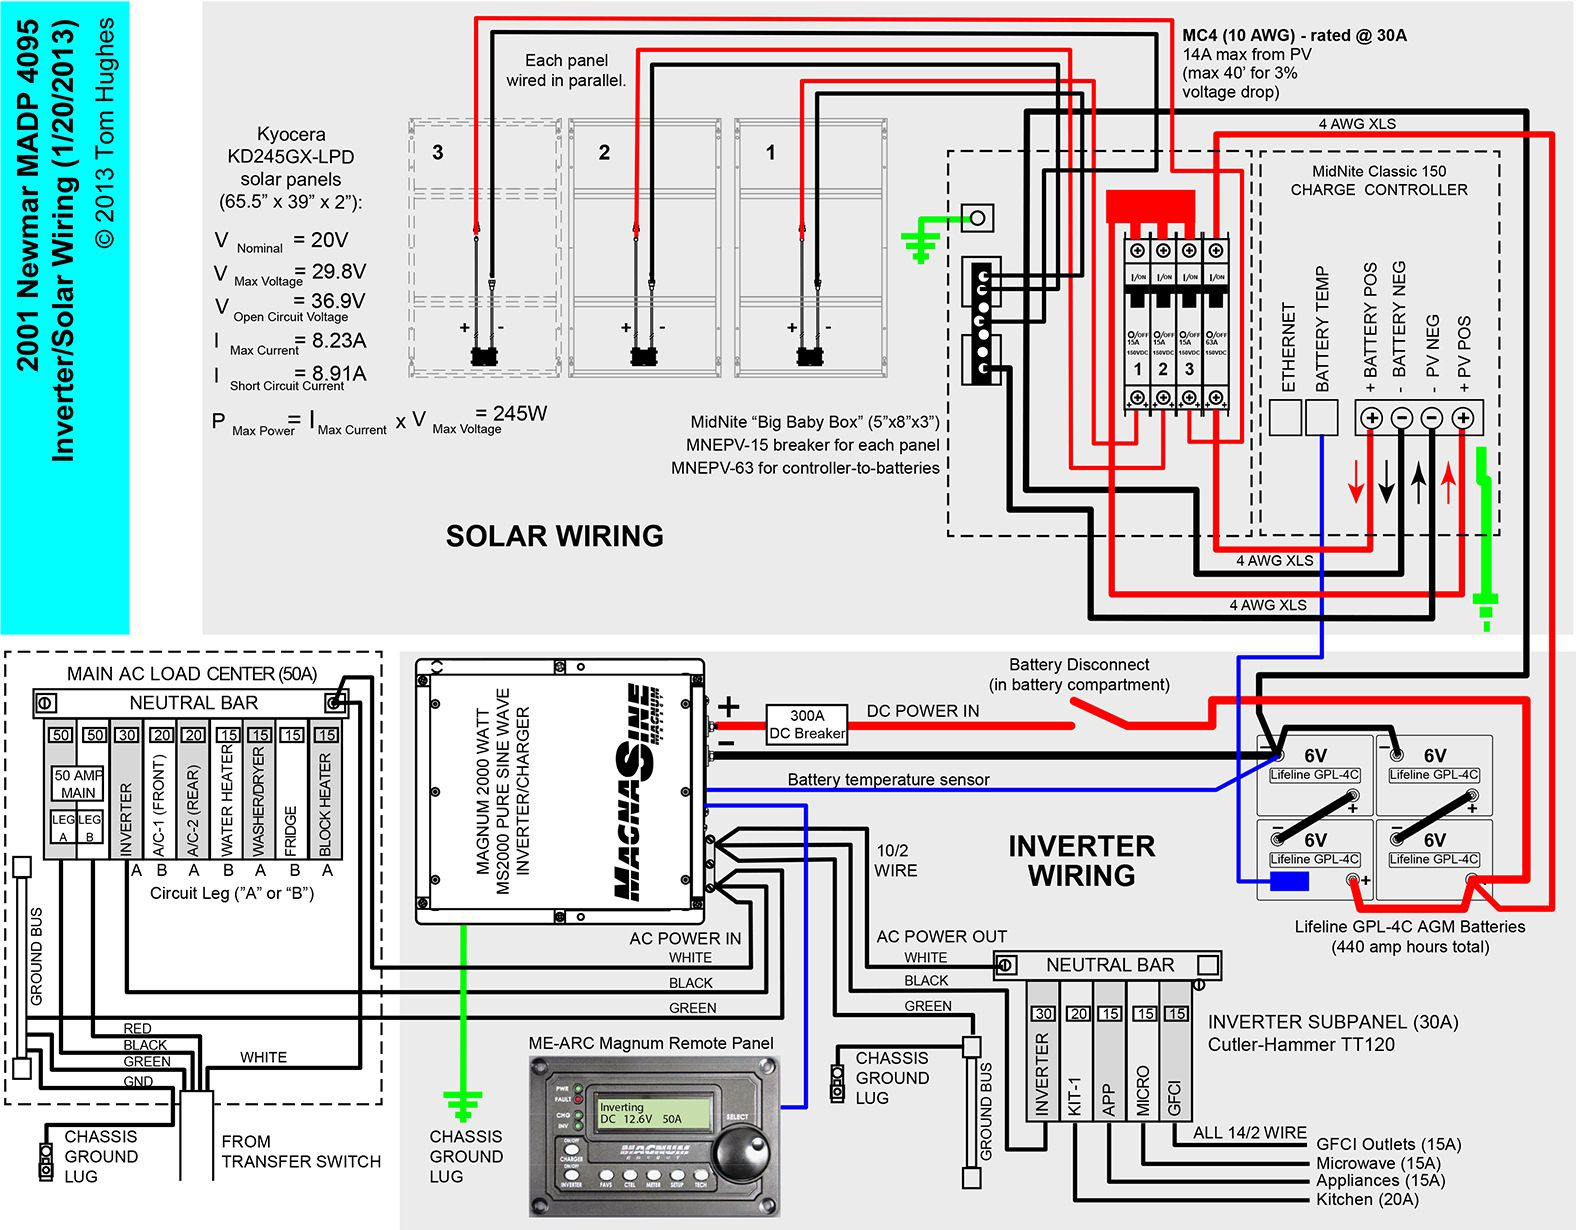 inverter transfer switch wiring diagram 50 transfer switch wiring diagram rv inverter wiring diagram | rv inverter wiring diagram ...